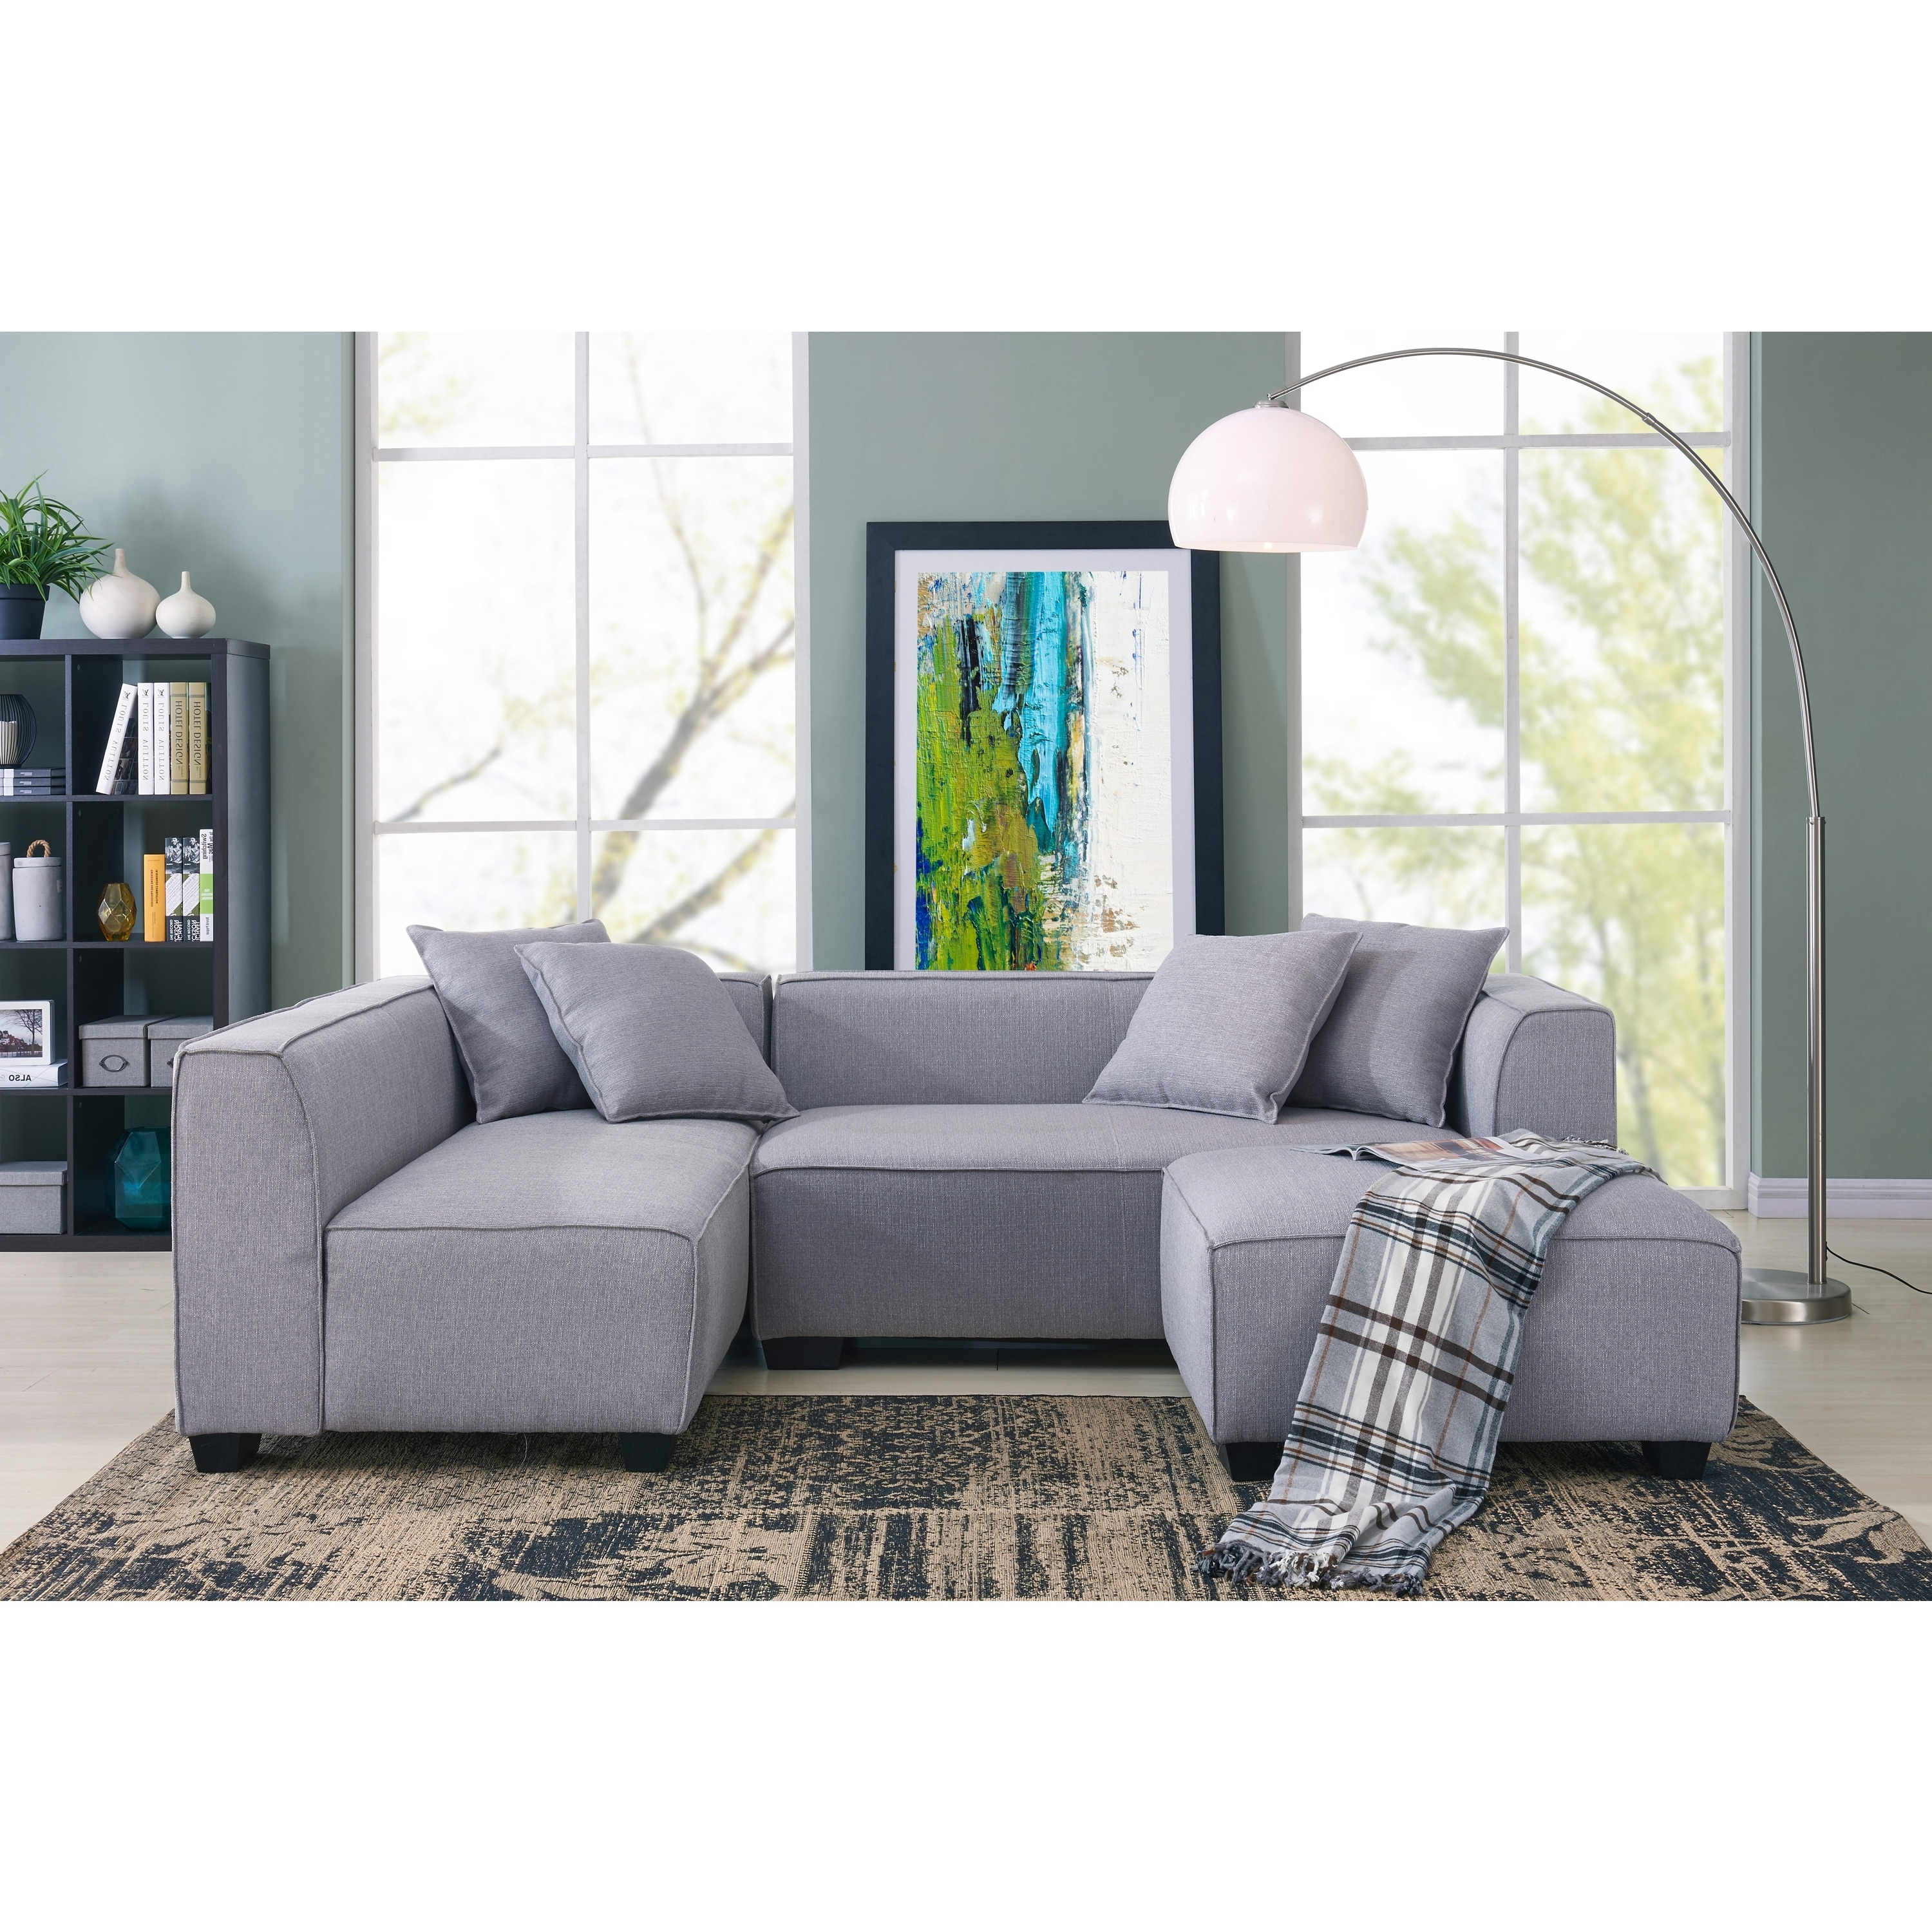 Phoenix Sectional Sofas Pertaining To Well Liked Handy Living Phoenix Grey Sectional Sofa With Ottoman – Free (View 13 of 20)